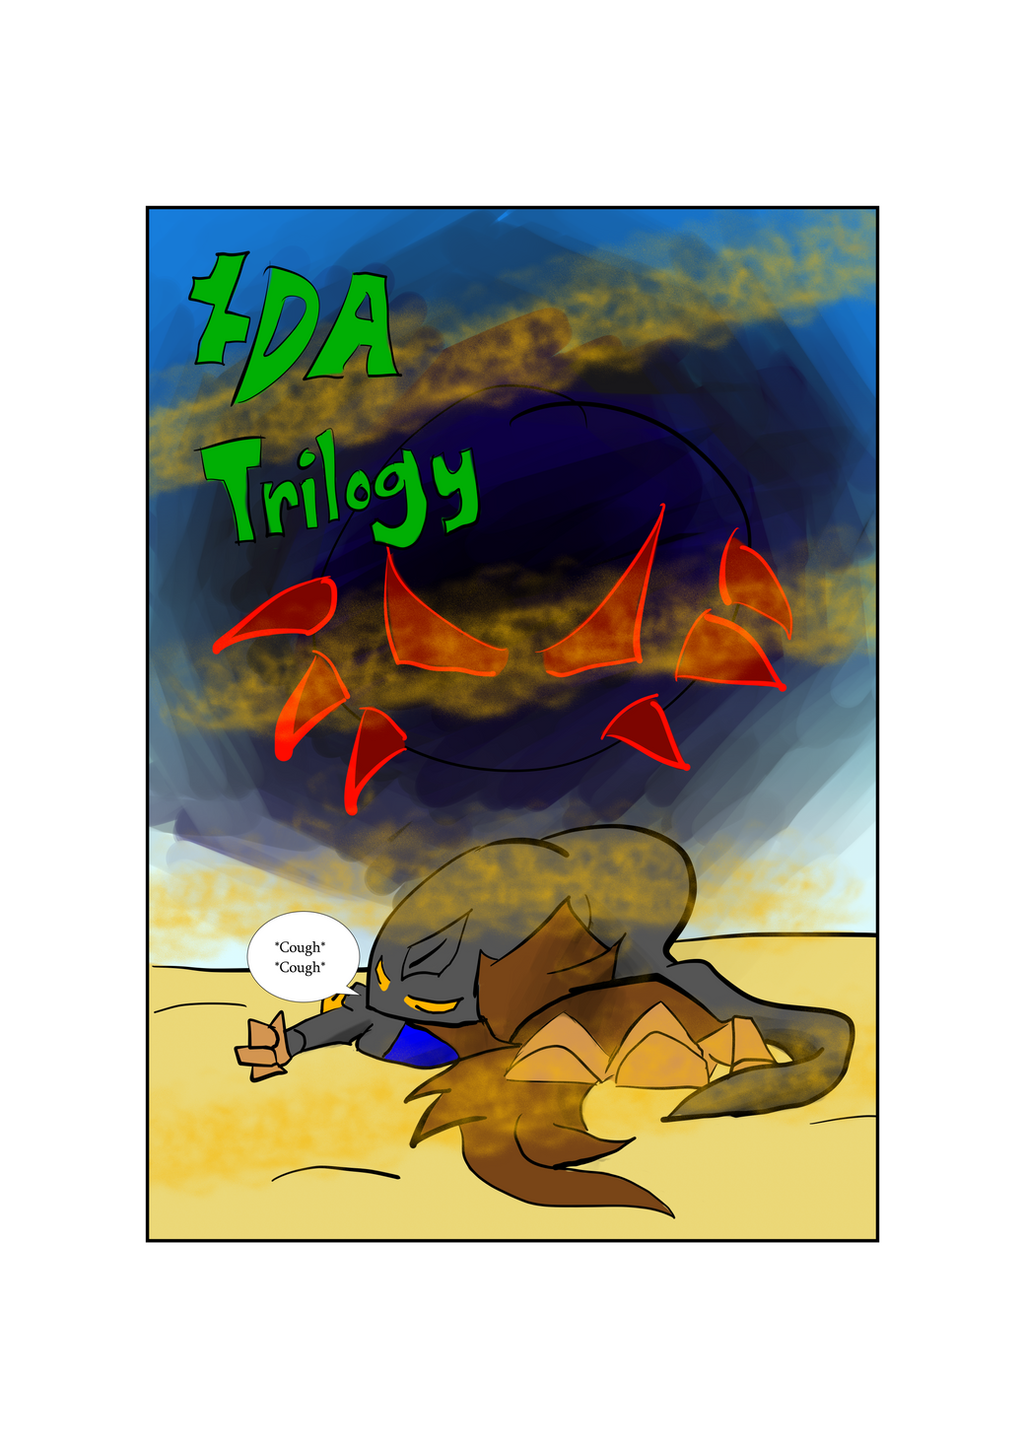 DA Trilogy Cover by Thesimpleartist4